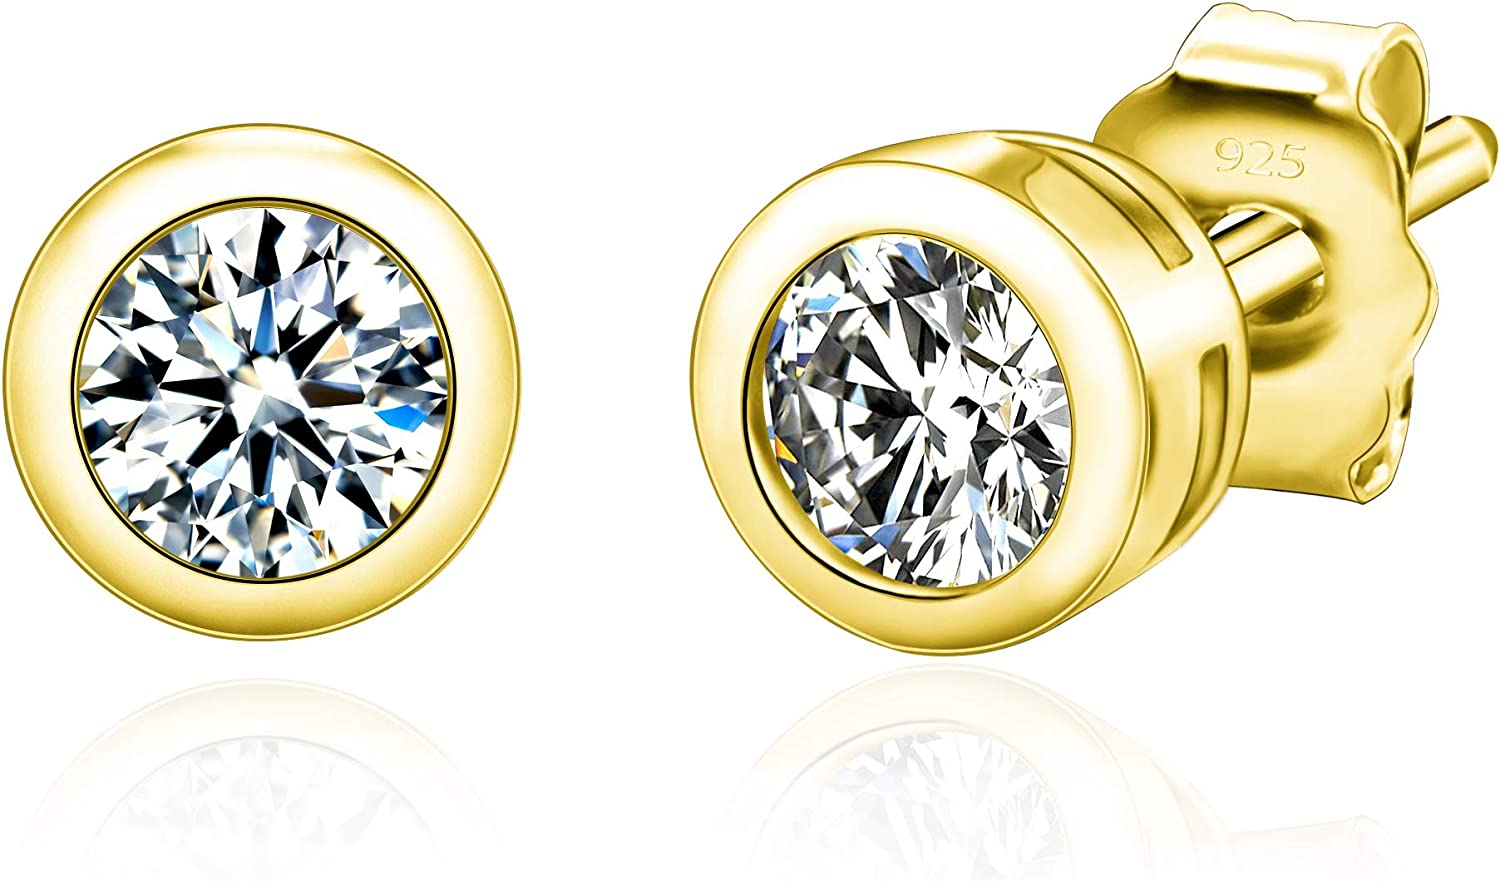 Spoil Cupid 14k Gold Plated Sterling Silver Cubic Zirconia Round Bezel Set Stud Earrings, 3mm Stone